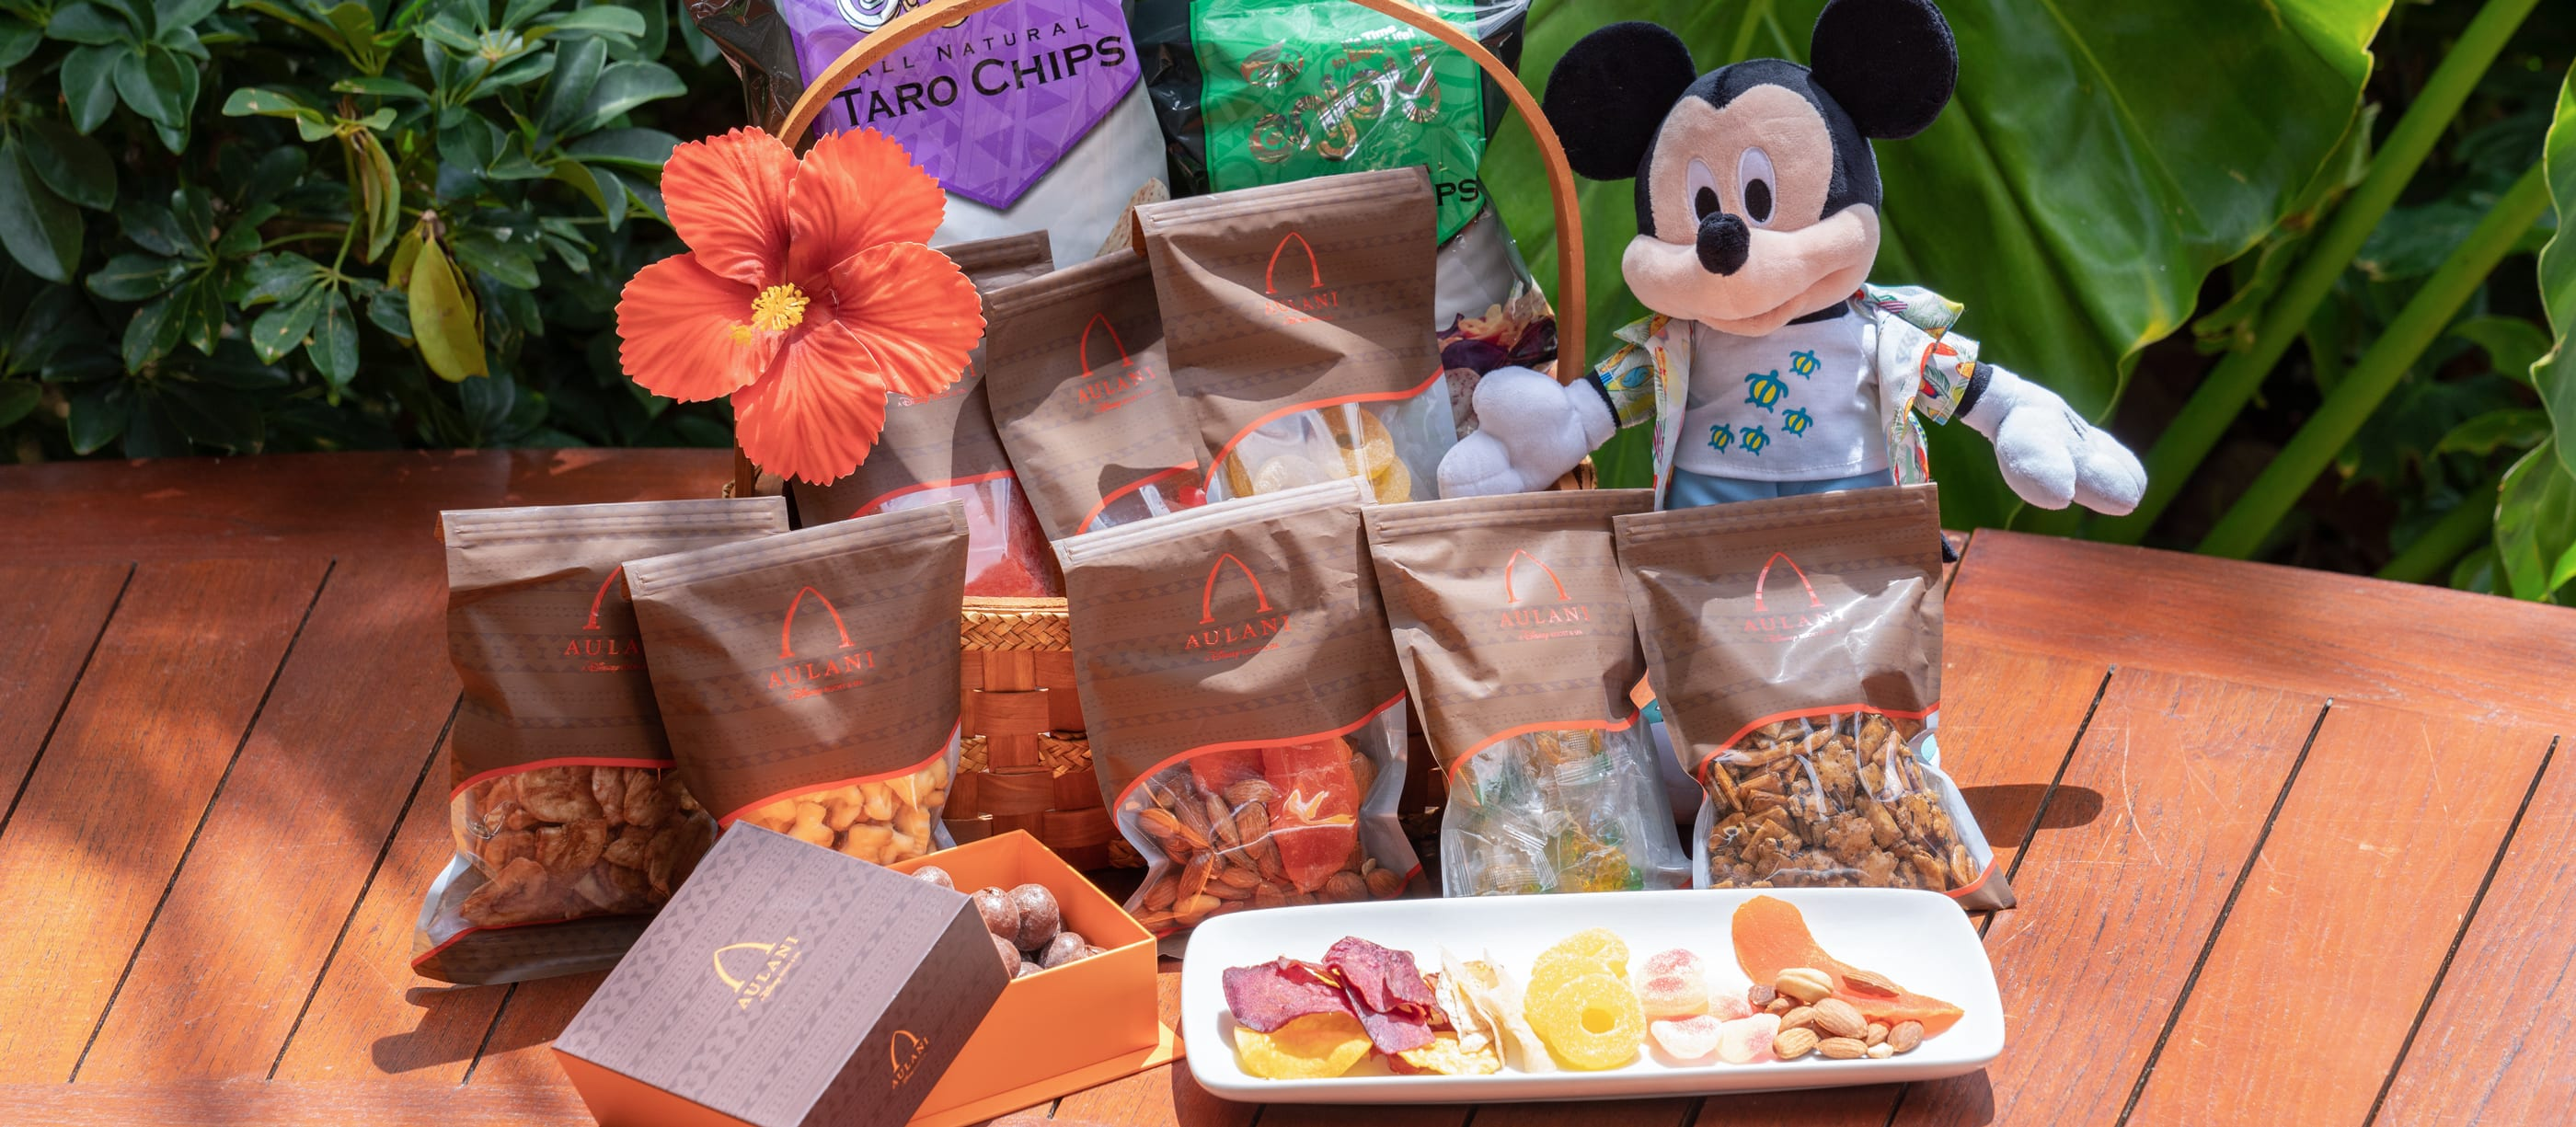 Aulani Friendship Basket gift basket including an array of individually packaged snacks and a plush Mickey Mouse